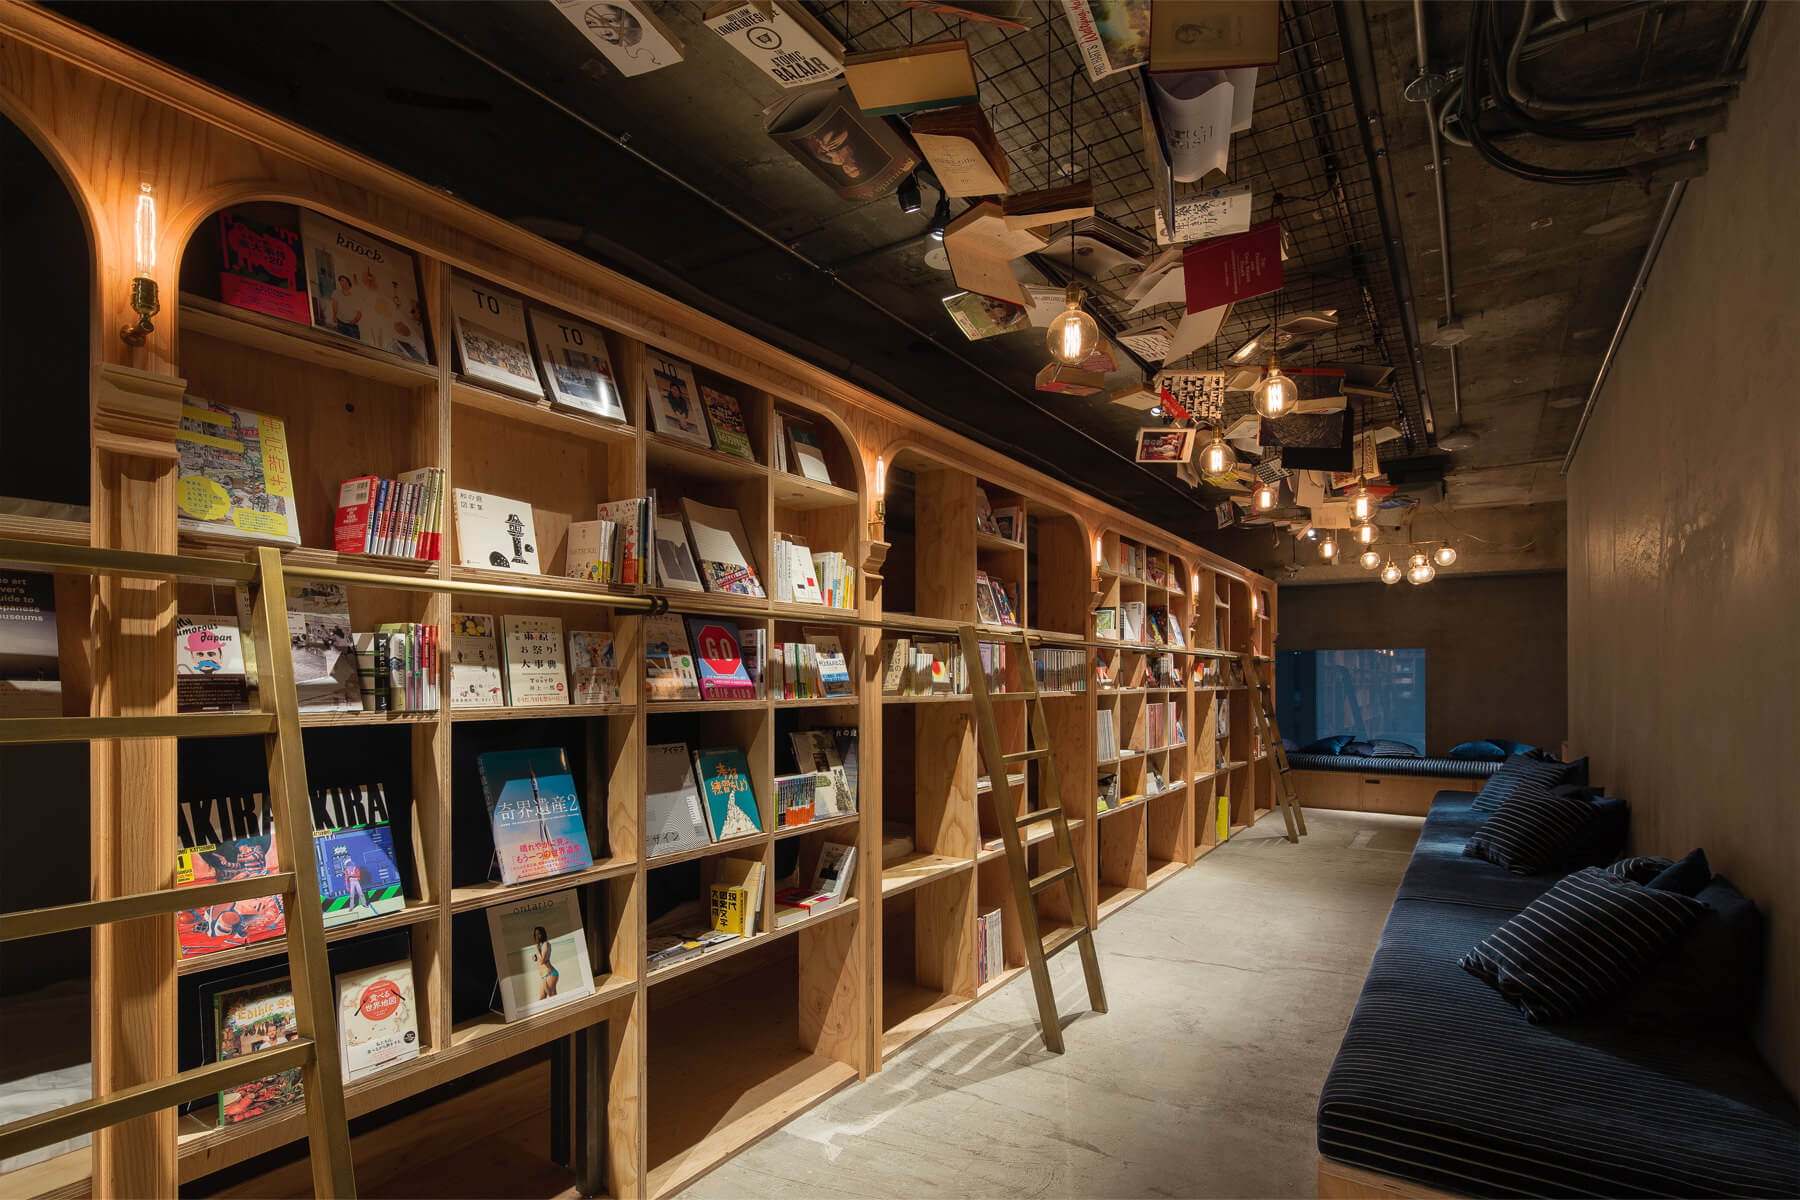 The Book and Bed hostel in Tokyo. Image from www.bookandbedtokyo.com